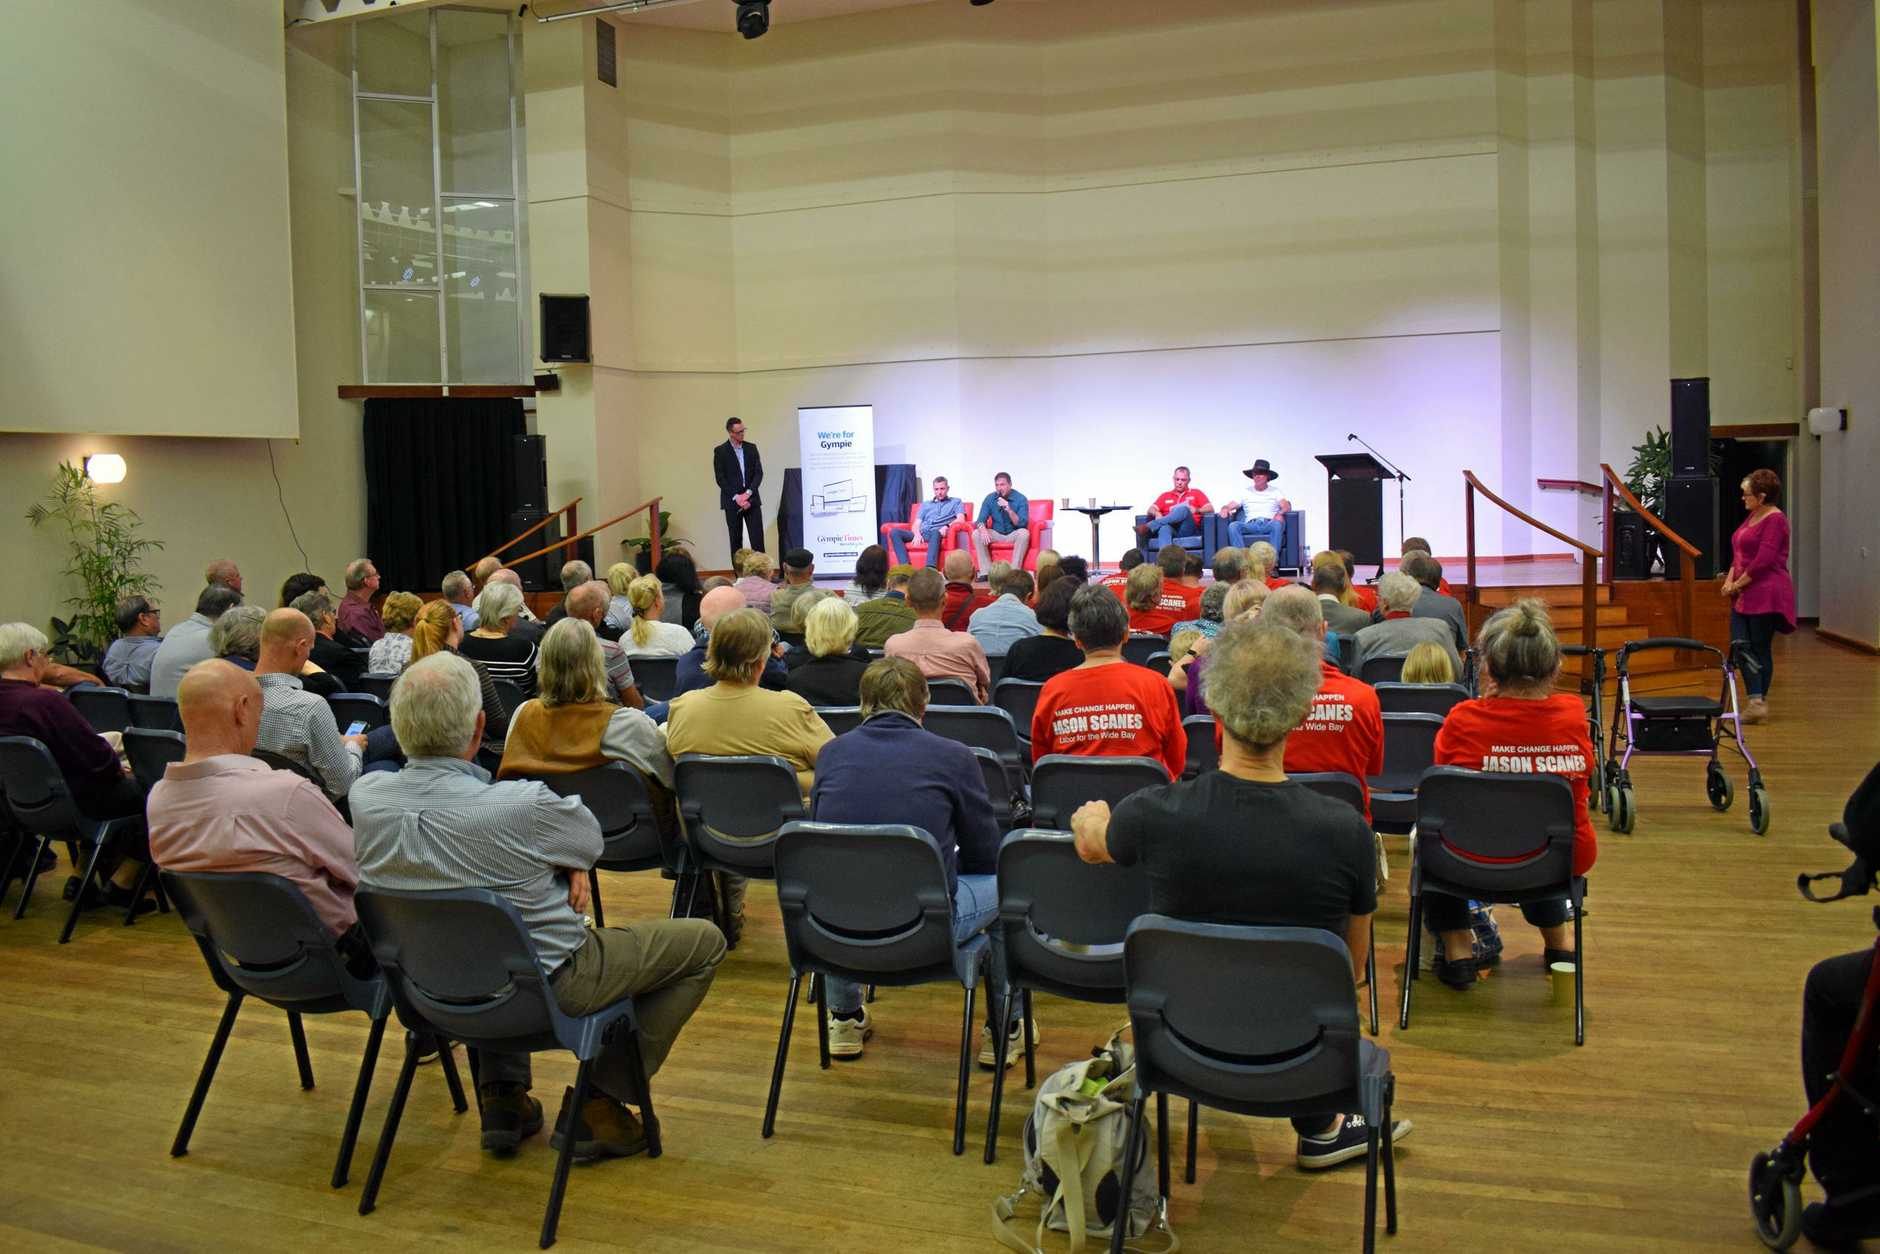 Meet the Candidates evening at the Gympie Civic Centre, Tuesday, May 7, 2019.